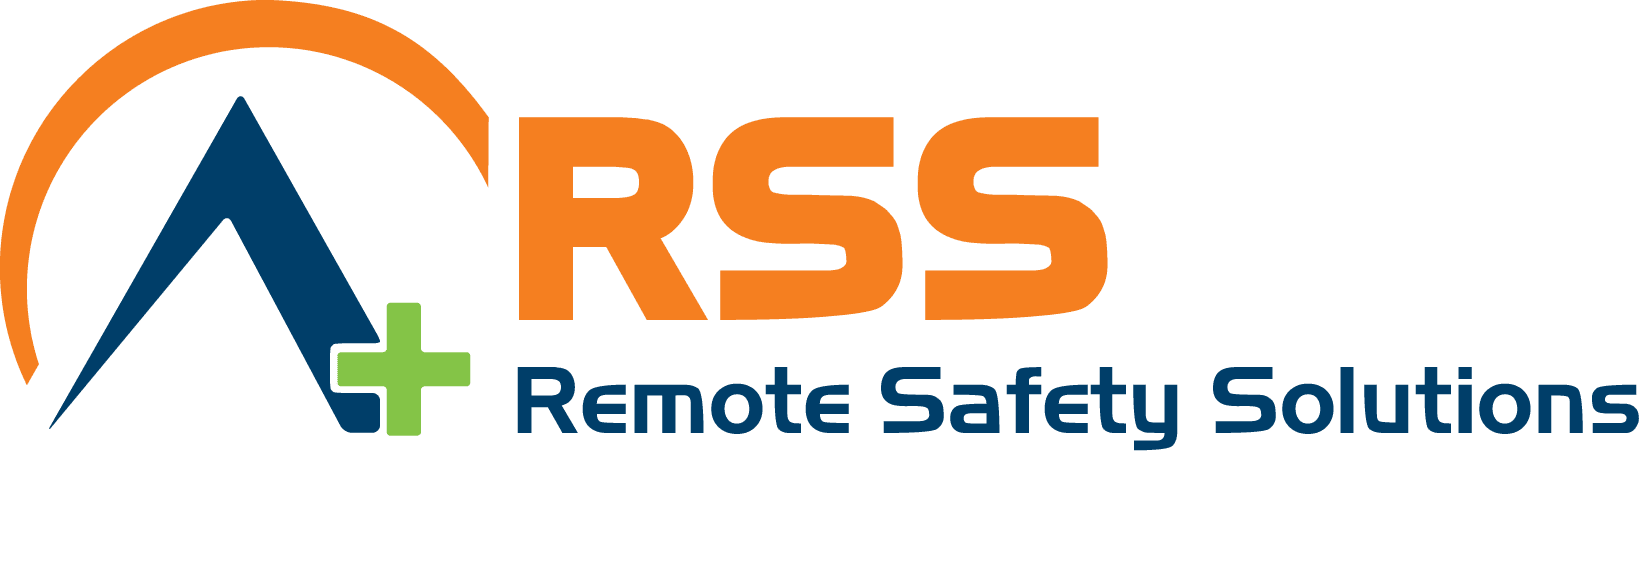 RSS Remote Safety Solutions